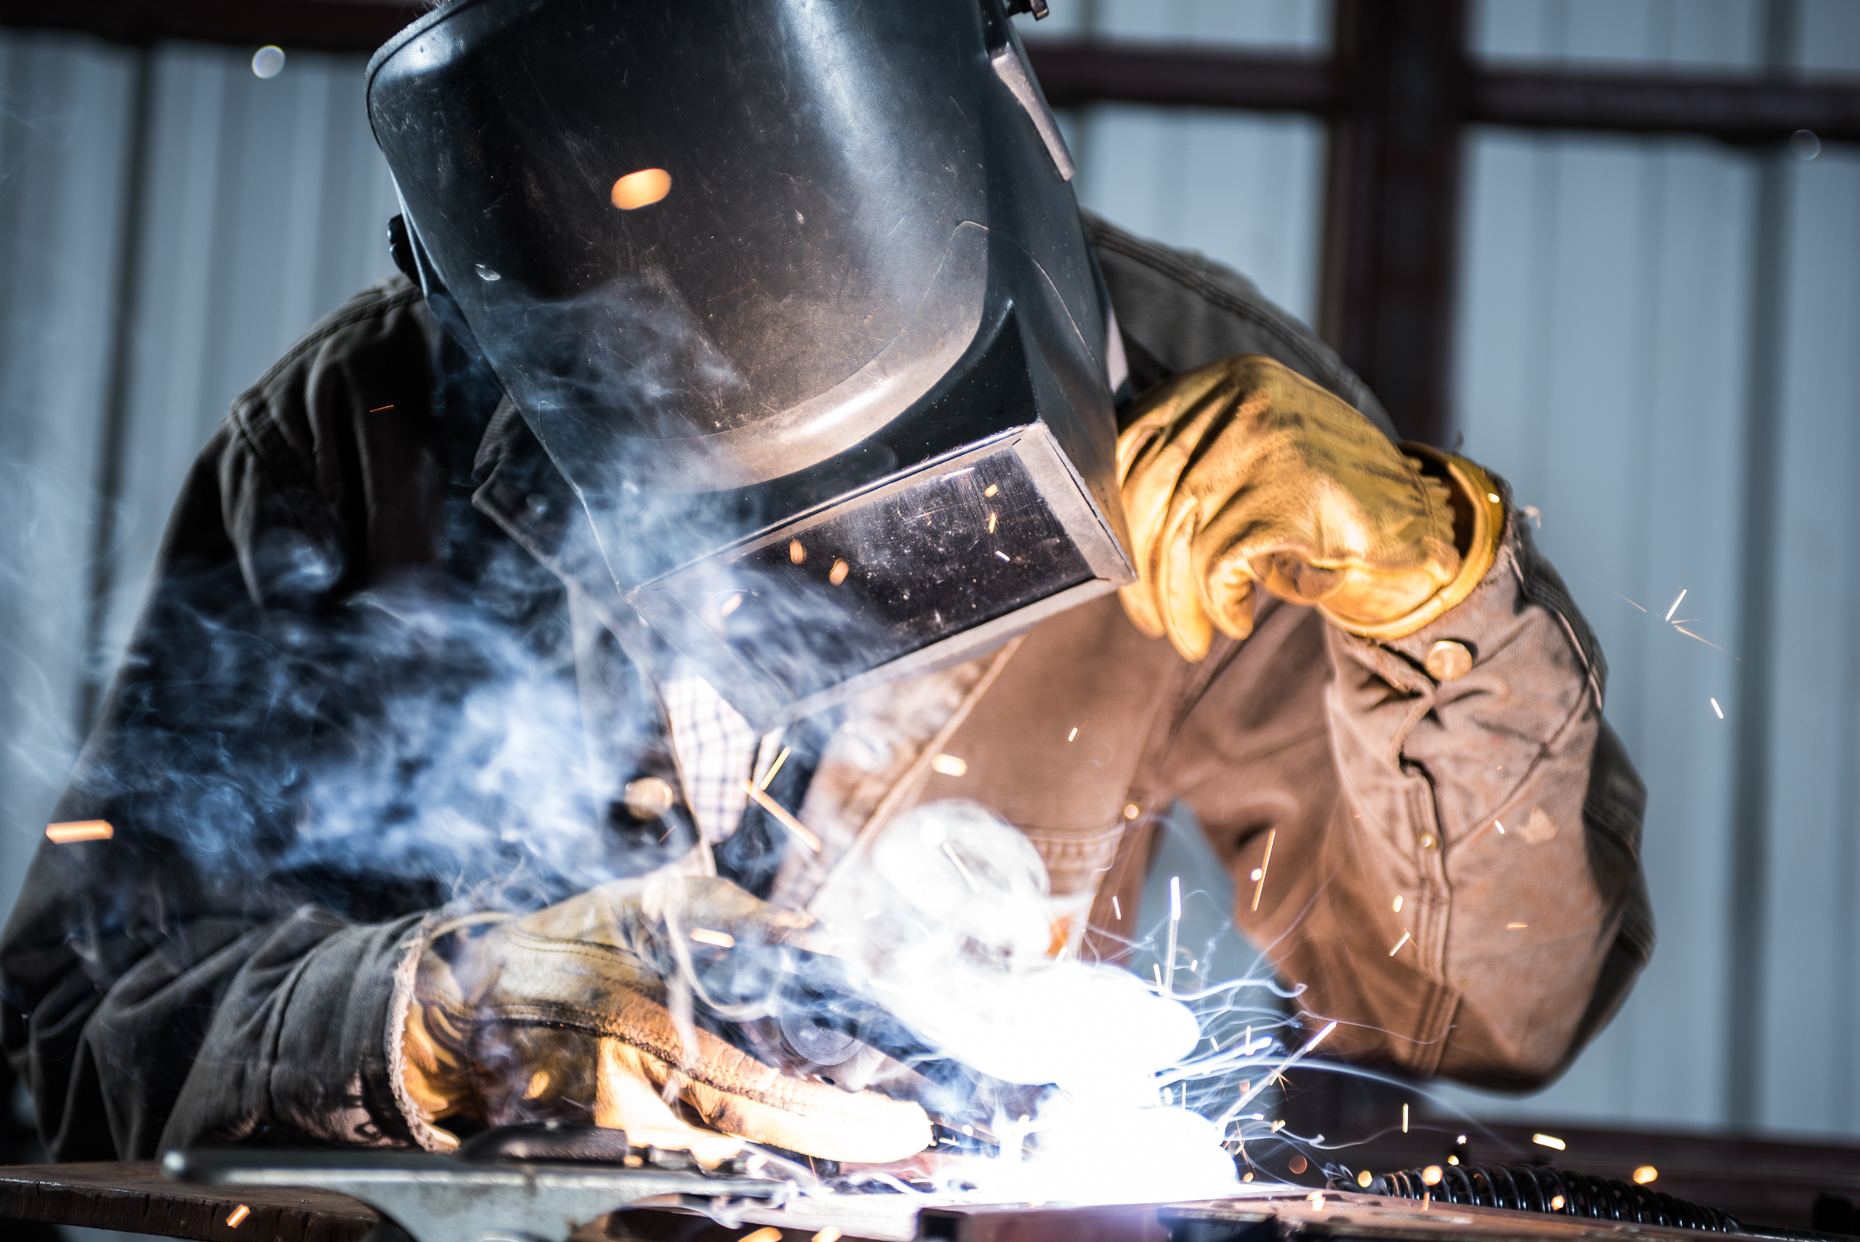 Welder in shop. Isaac Miller Photography  | Agriculture & Industry Photographer  |  Commercial & Editorial photography  |   Missoula + San Antonio